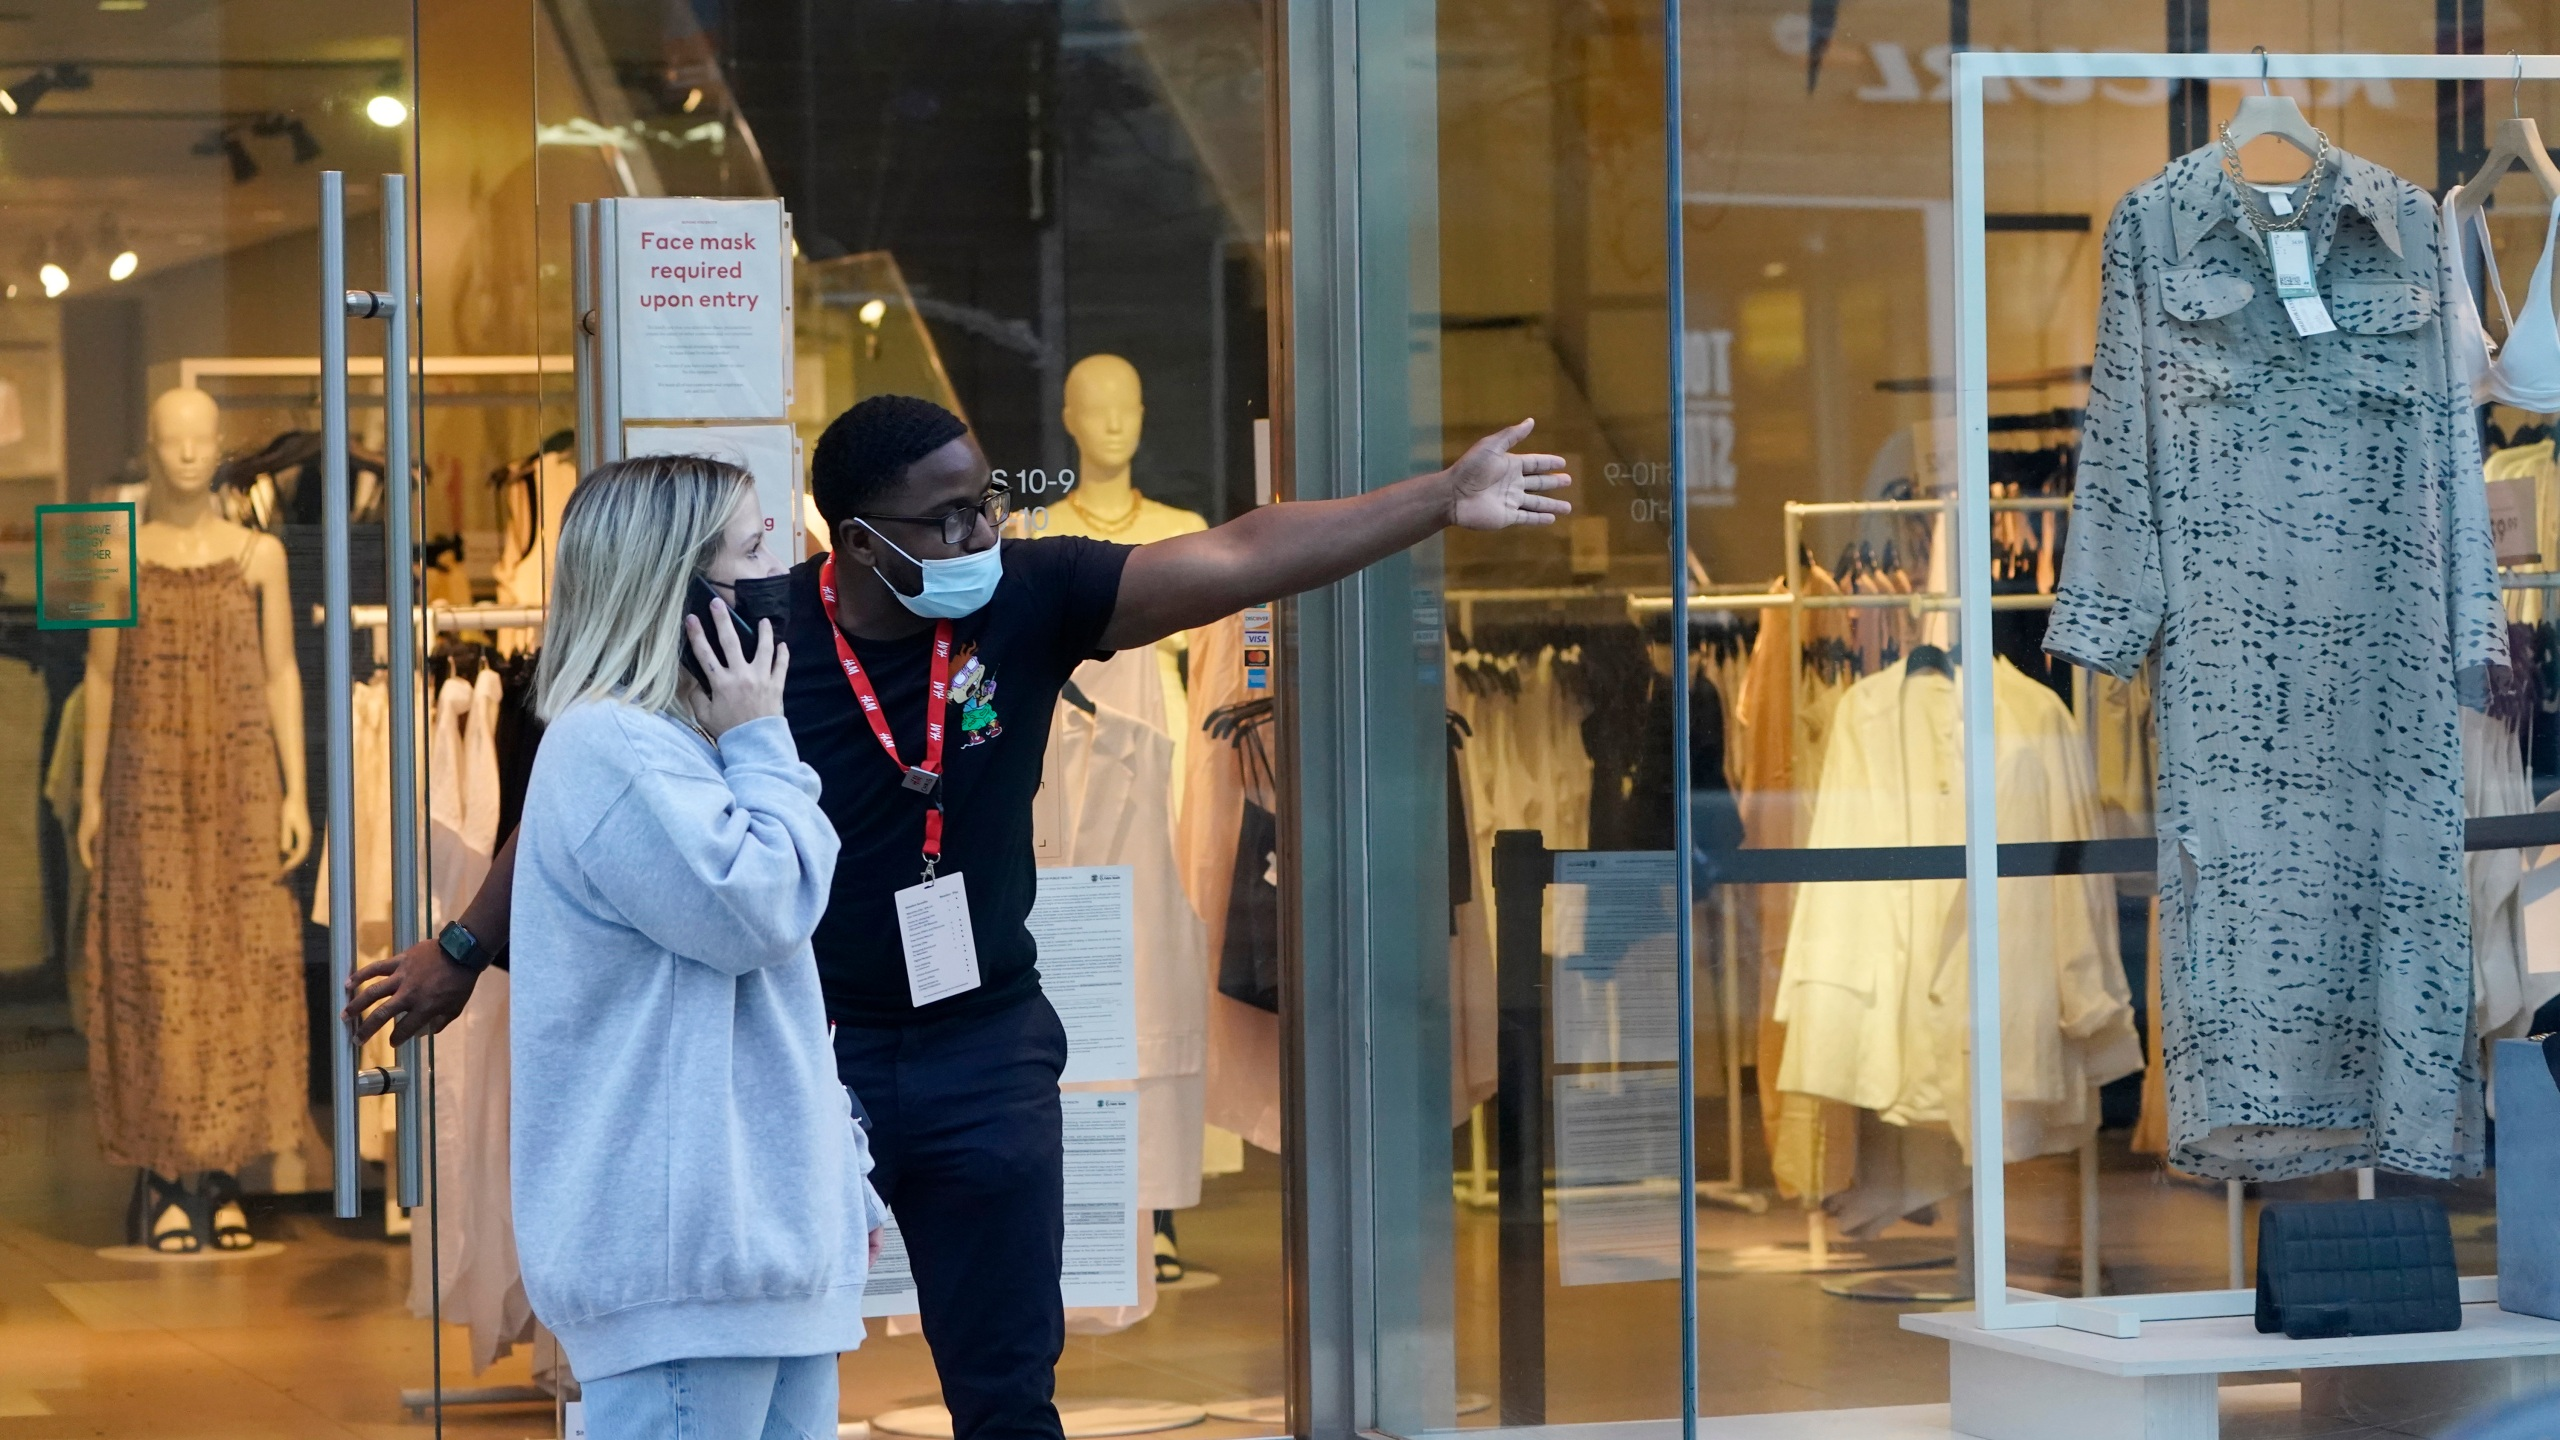 A salesperson gives directions to a shopper amid the COVID-19 pandemic on The Promenade Wednesday, June 9, 2021, in Santa Monica, Calif. (AP Photo/Marcio Jose Sanchez)